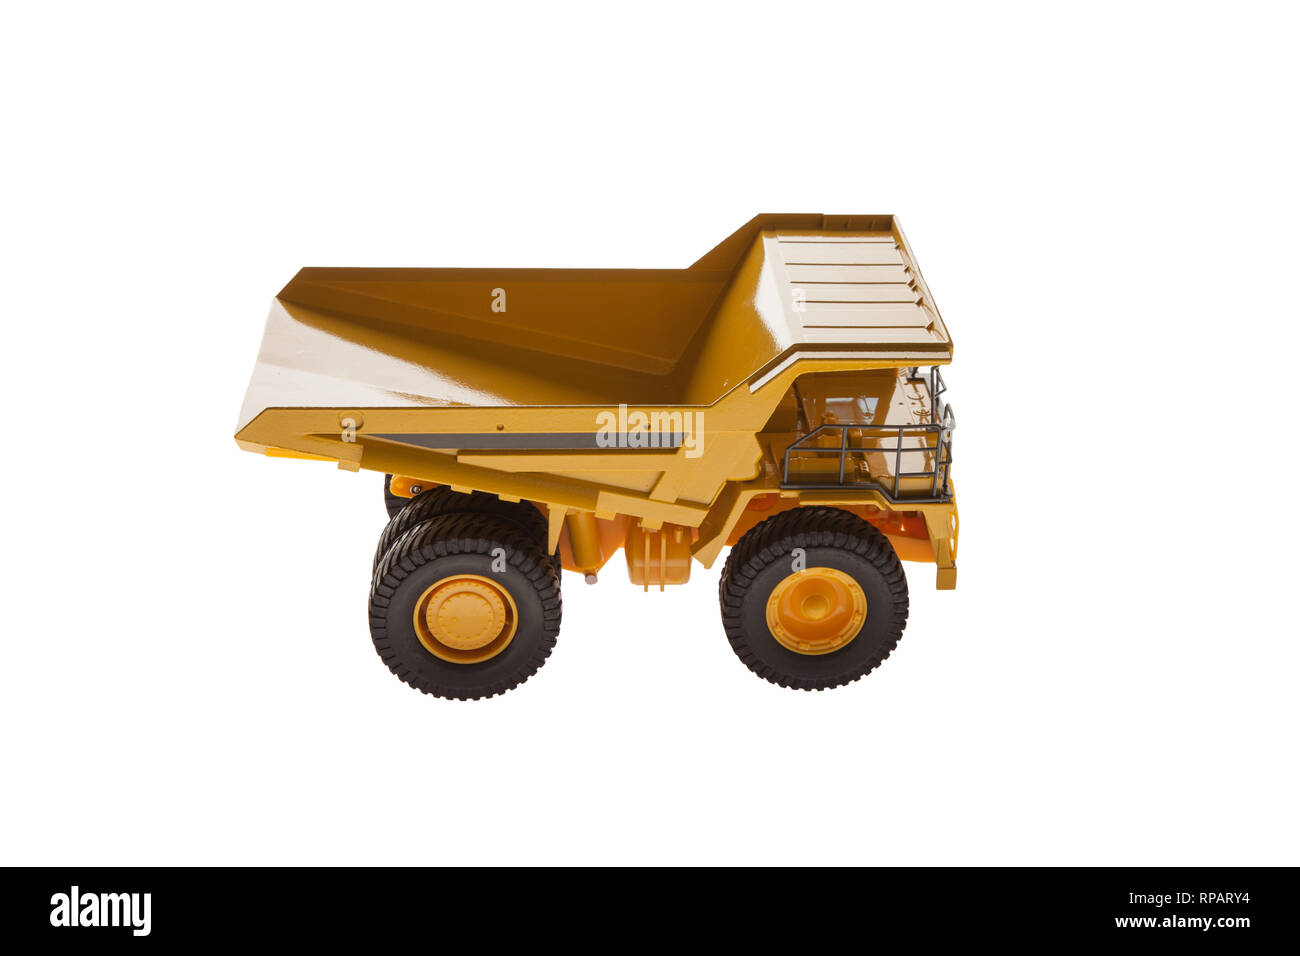 Heavy Load Dump Truck Top View - Stock Image